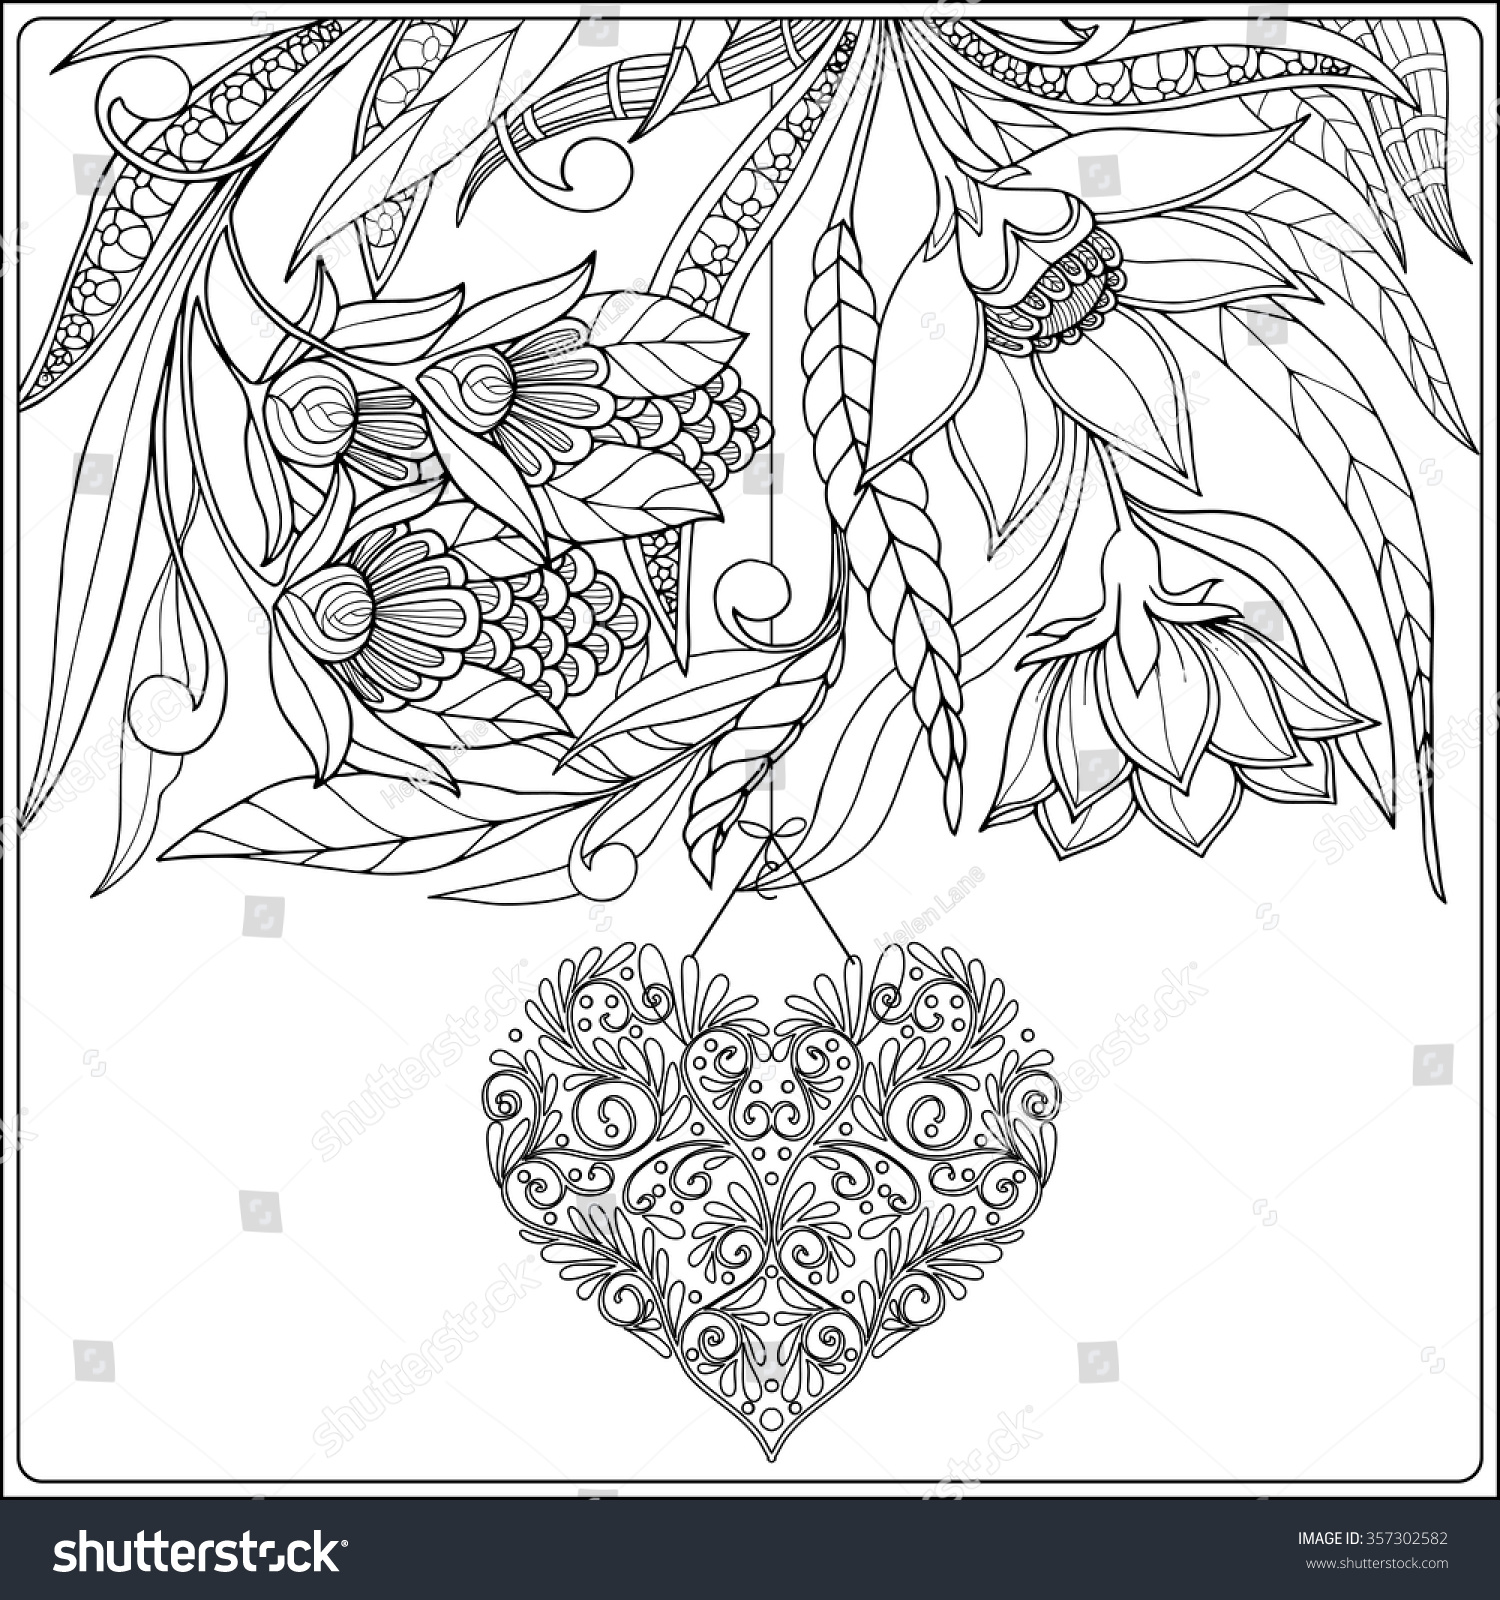 valentines day coloring page for adults happy day card decorative stock vector 7929